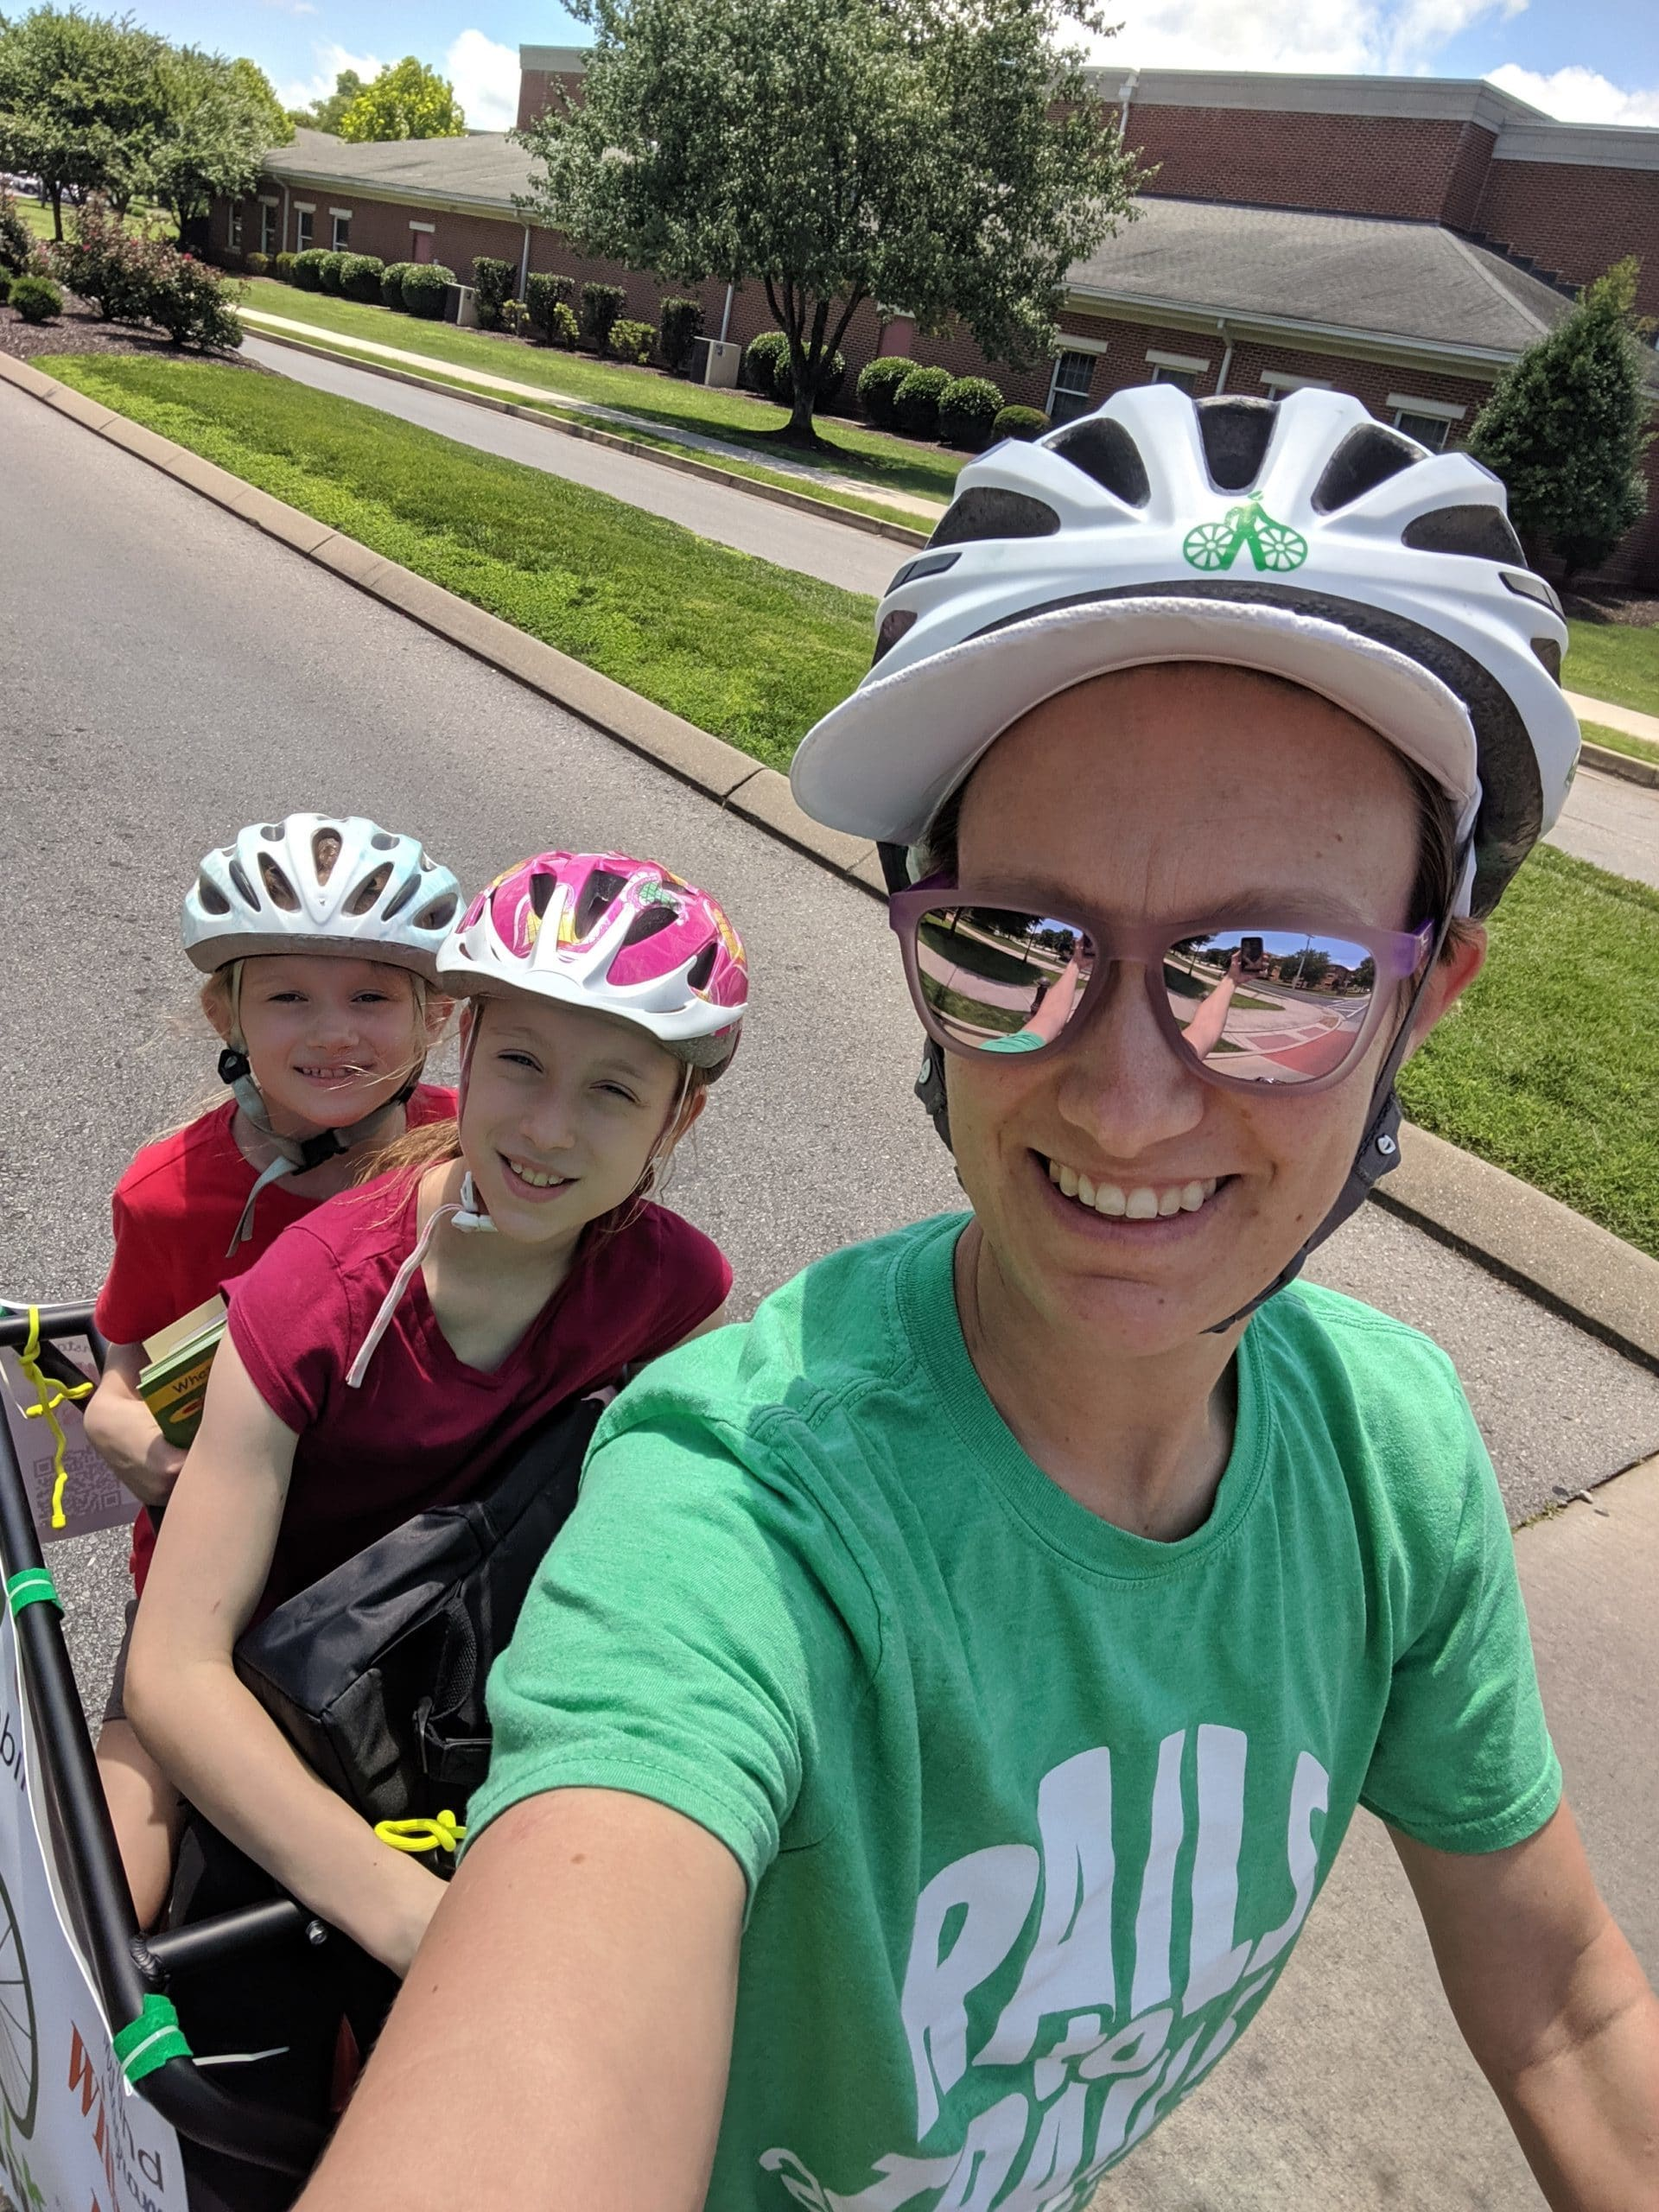 Biking with Kids